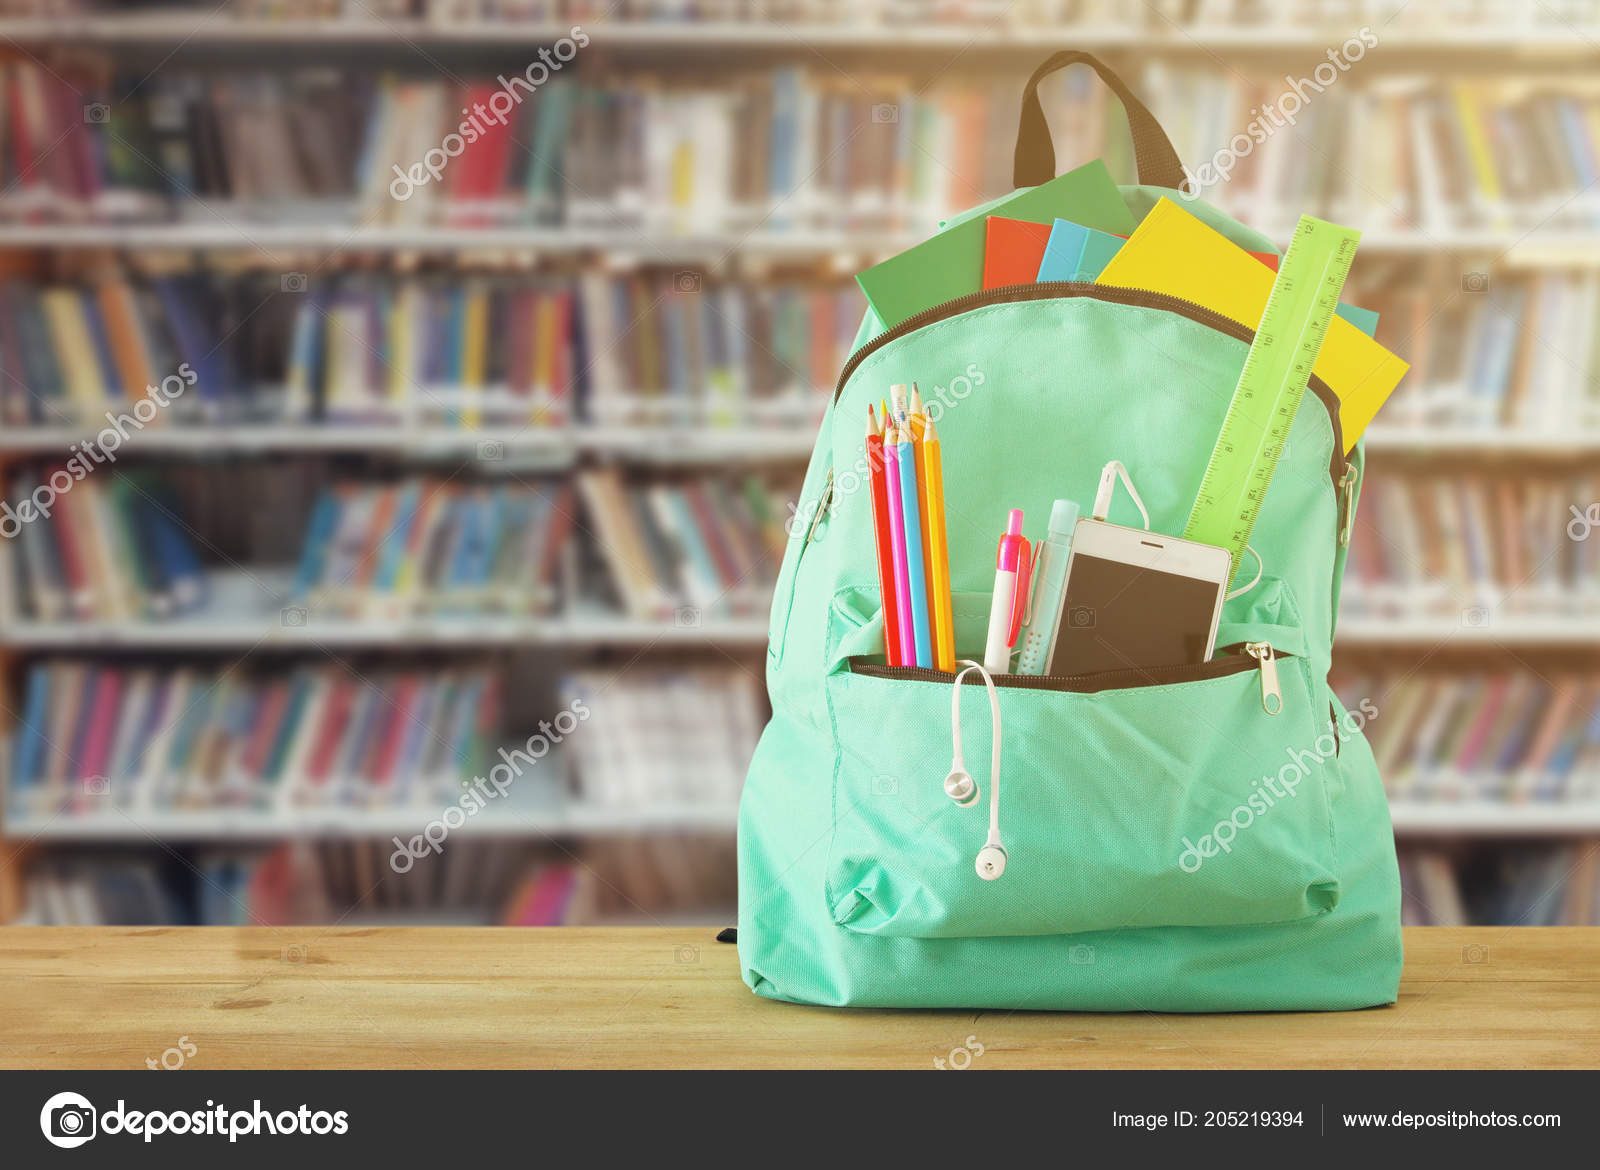 School Bag Stationery Notebooks Front Shelves Books Library